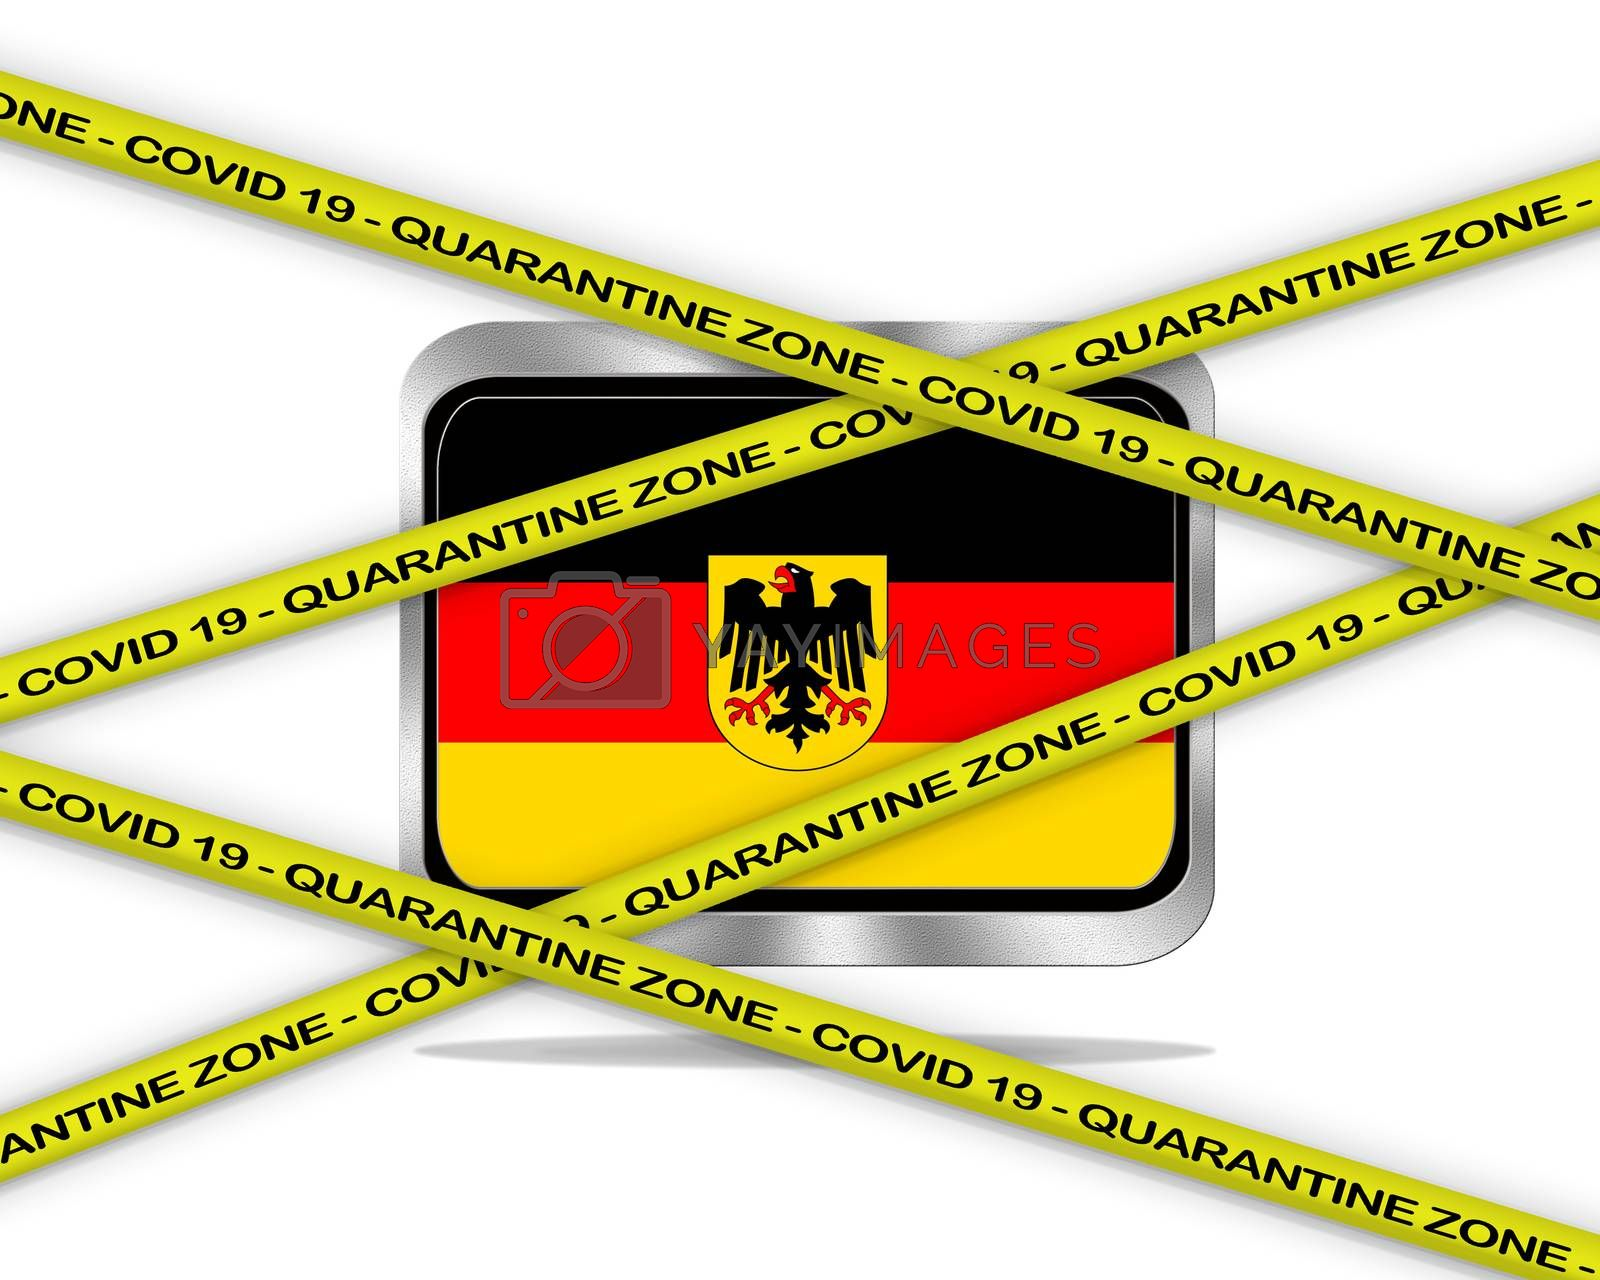 COVID-19 warning yellow ribbon written with: Quarantine zone Cover 19 on Germany flag illustration. Coronavirus danger area, quarantined country.